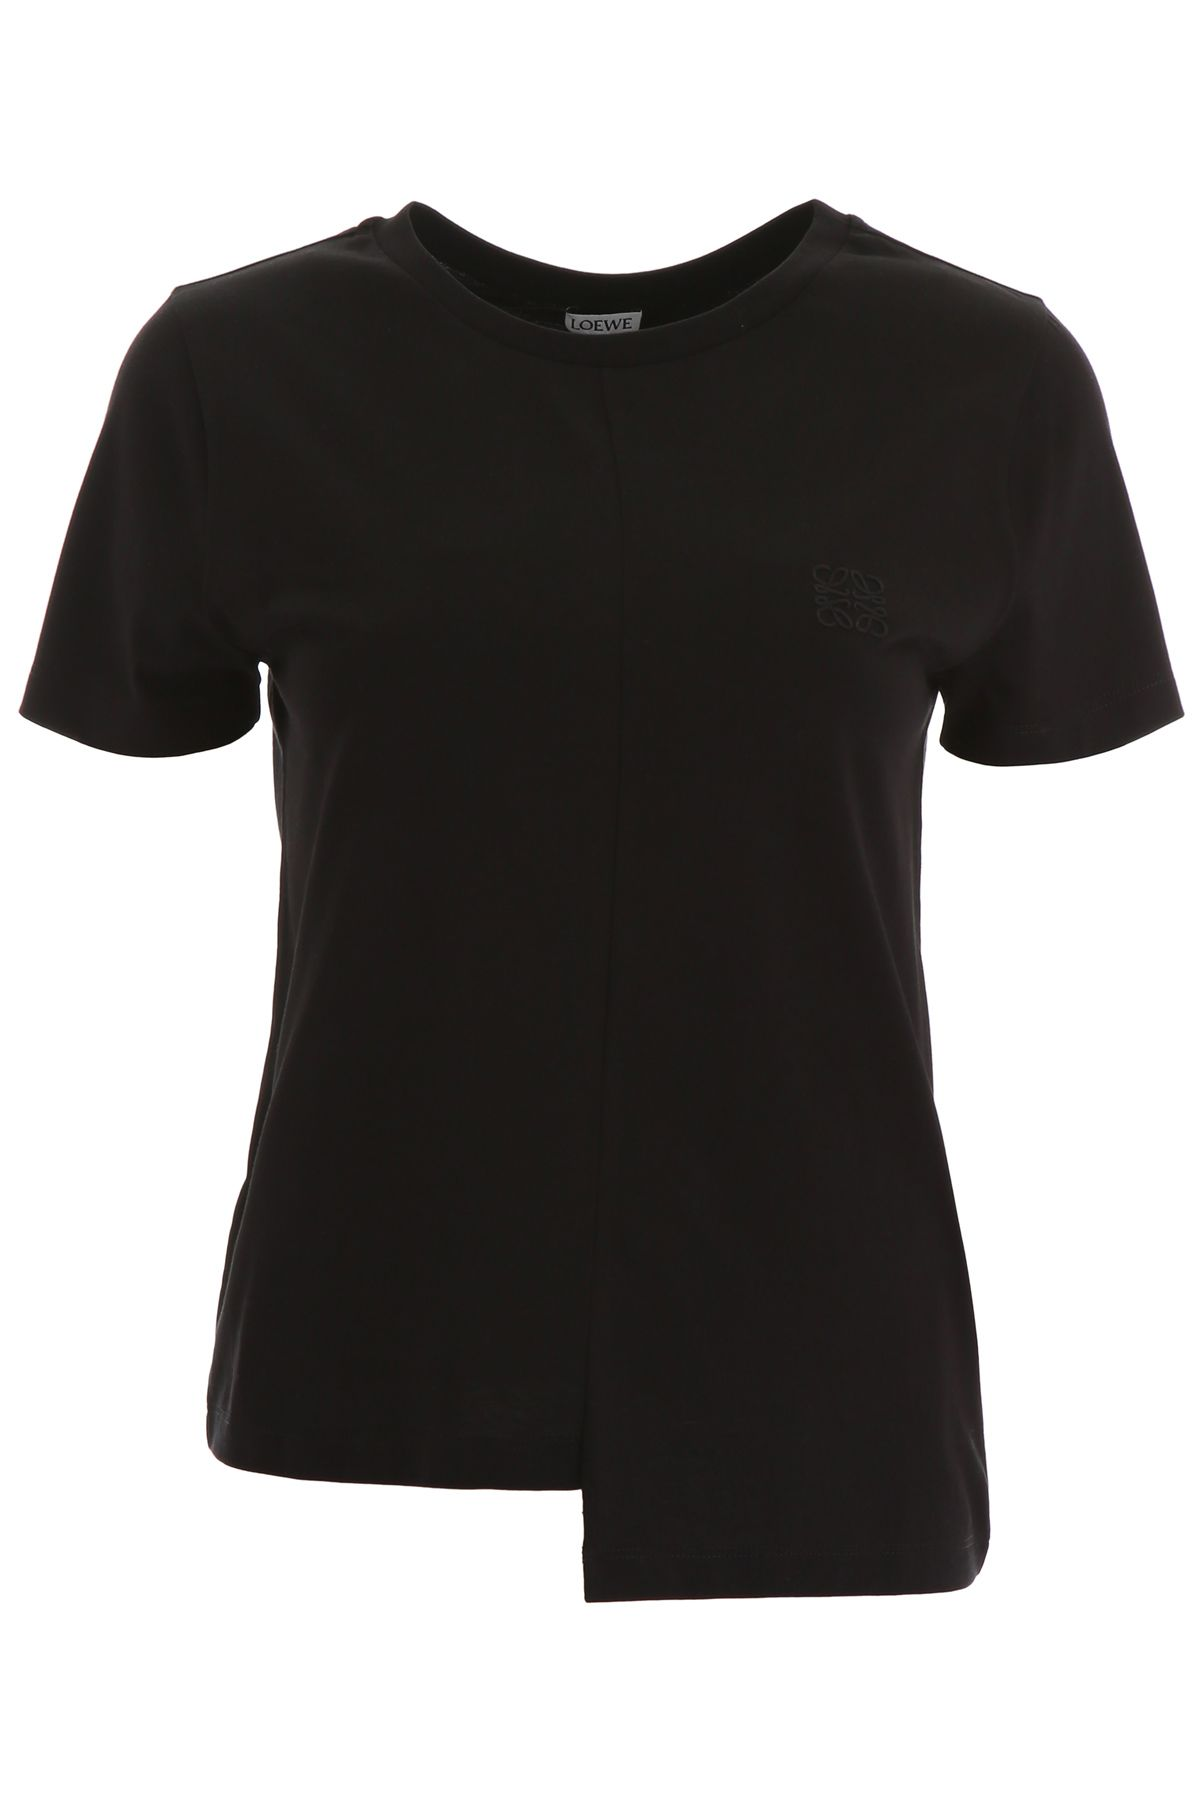 dee51a03772 Loewe Loewe T-shirt With Logo Embroidery - BLACK (Black) - 10977915 ...